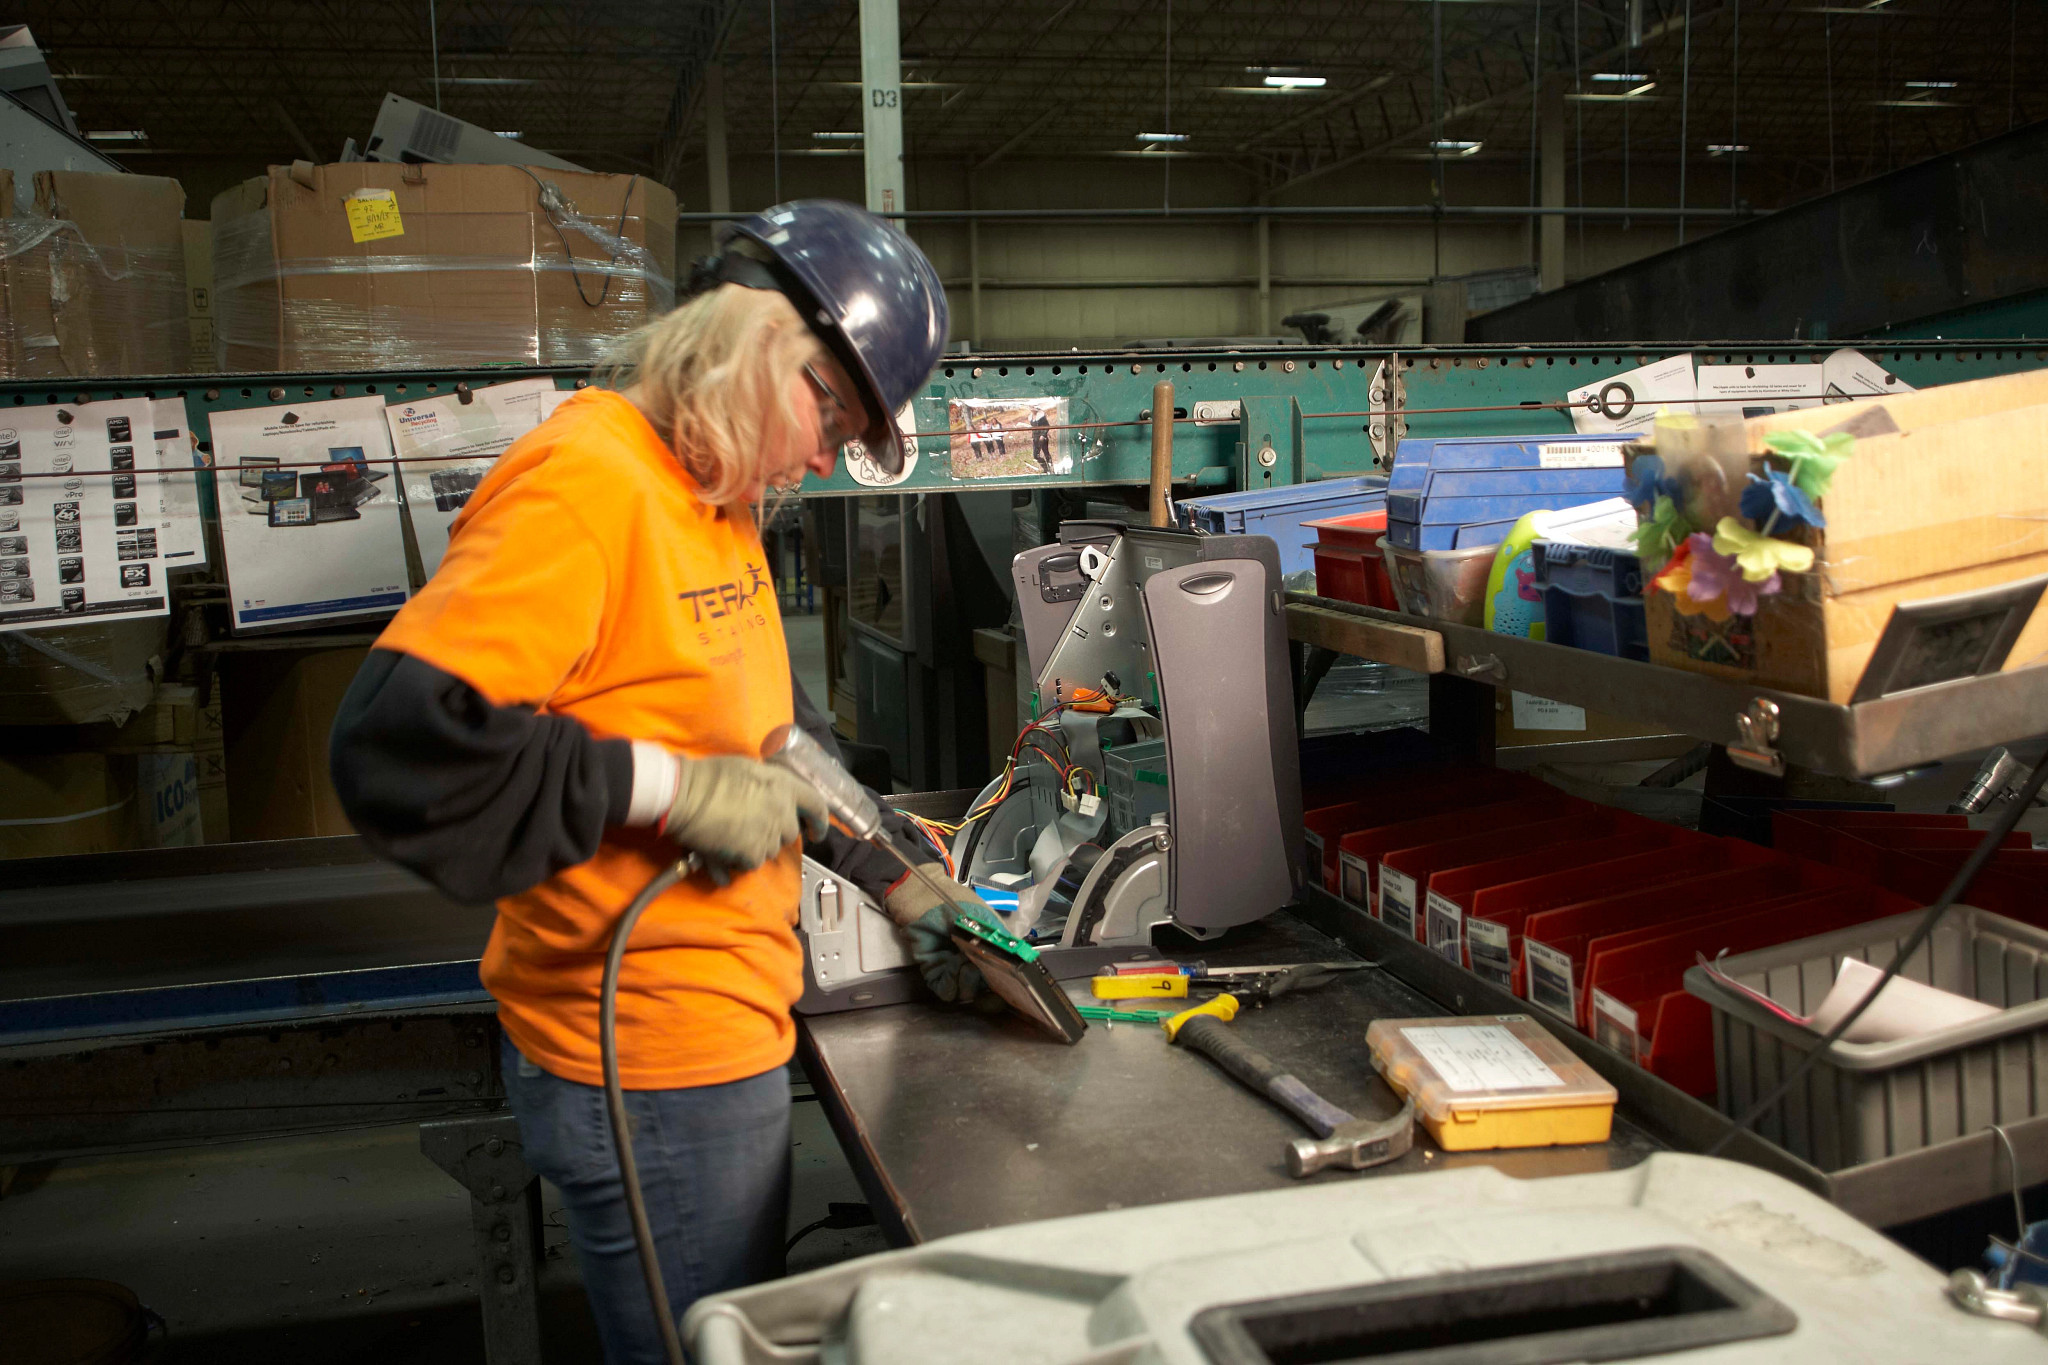 Worker recycles electronics at an E-Cycle collection site.